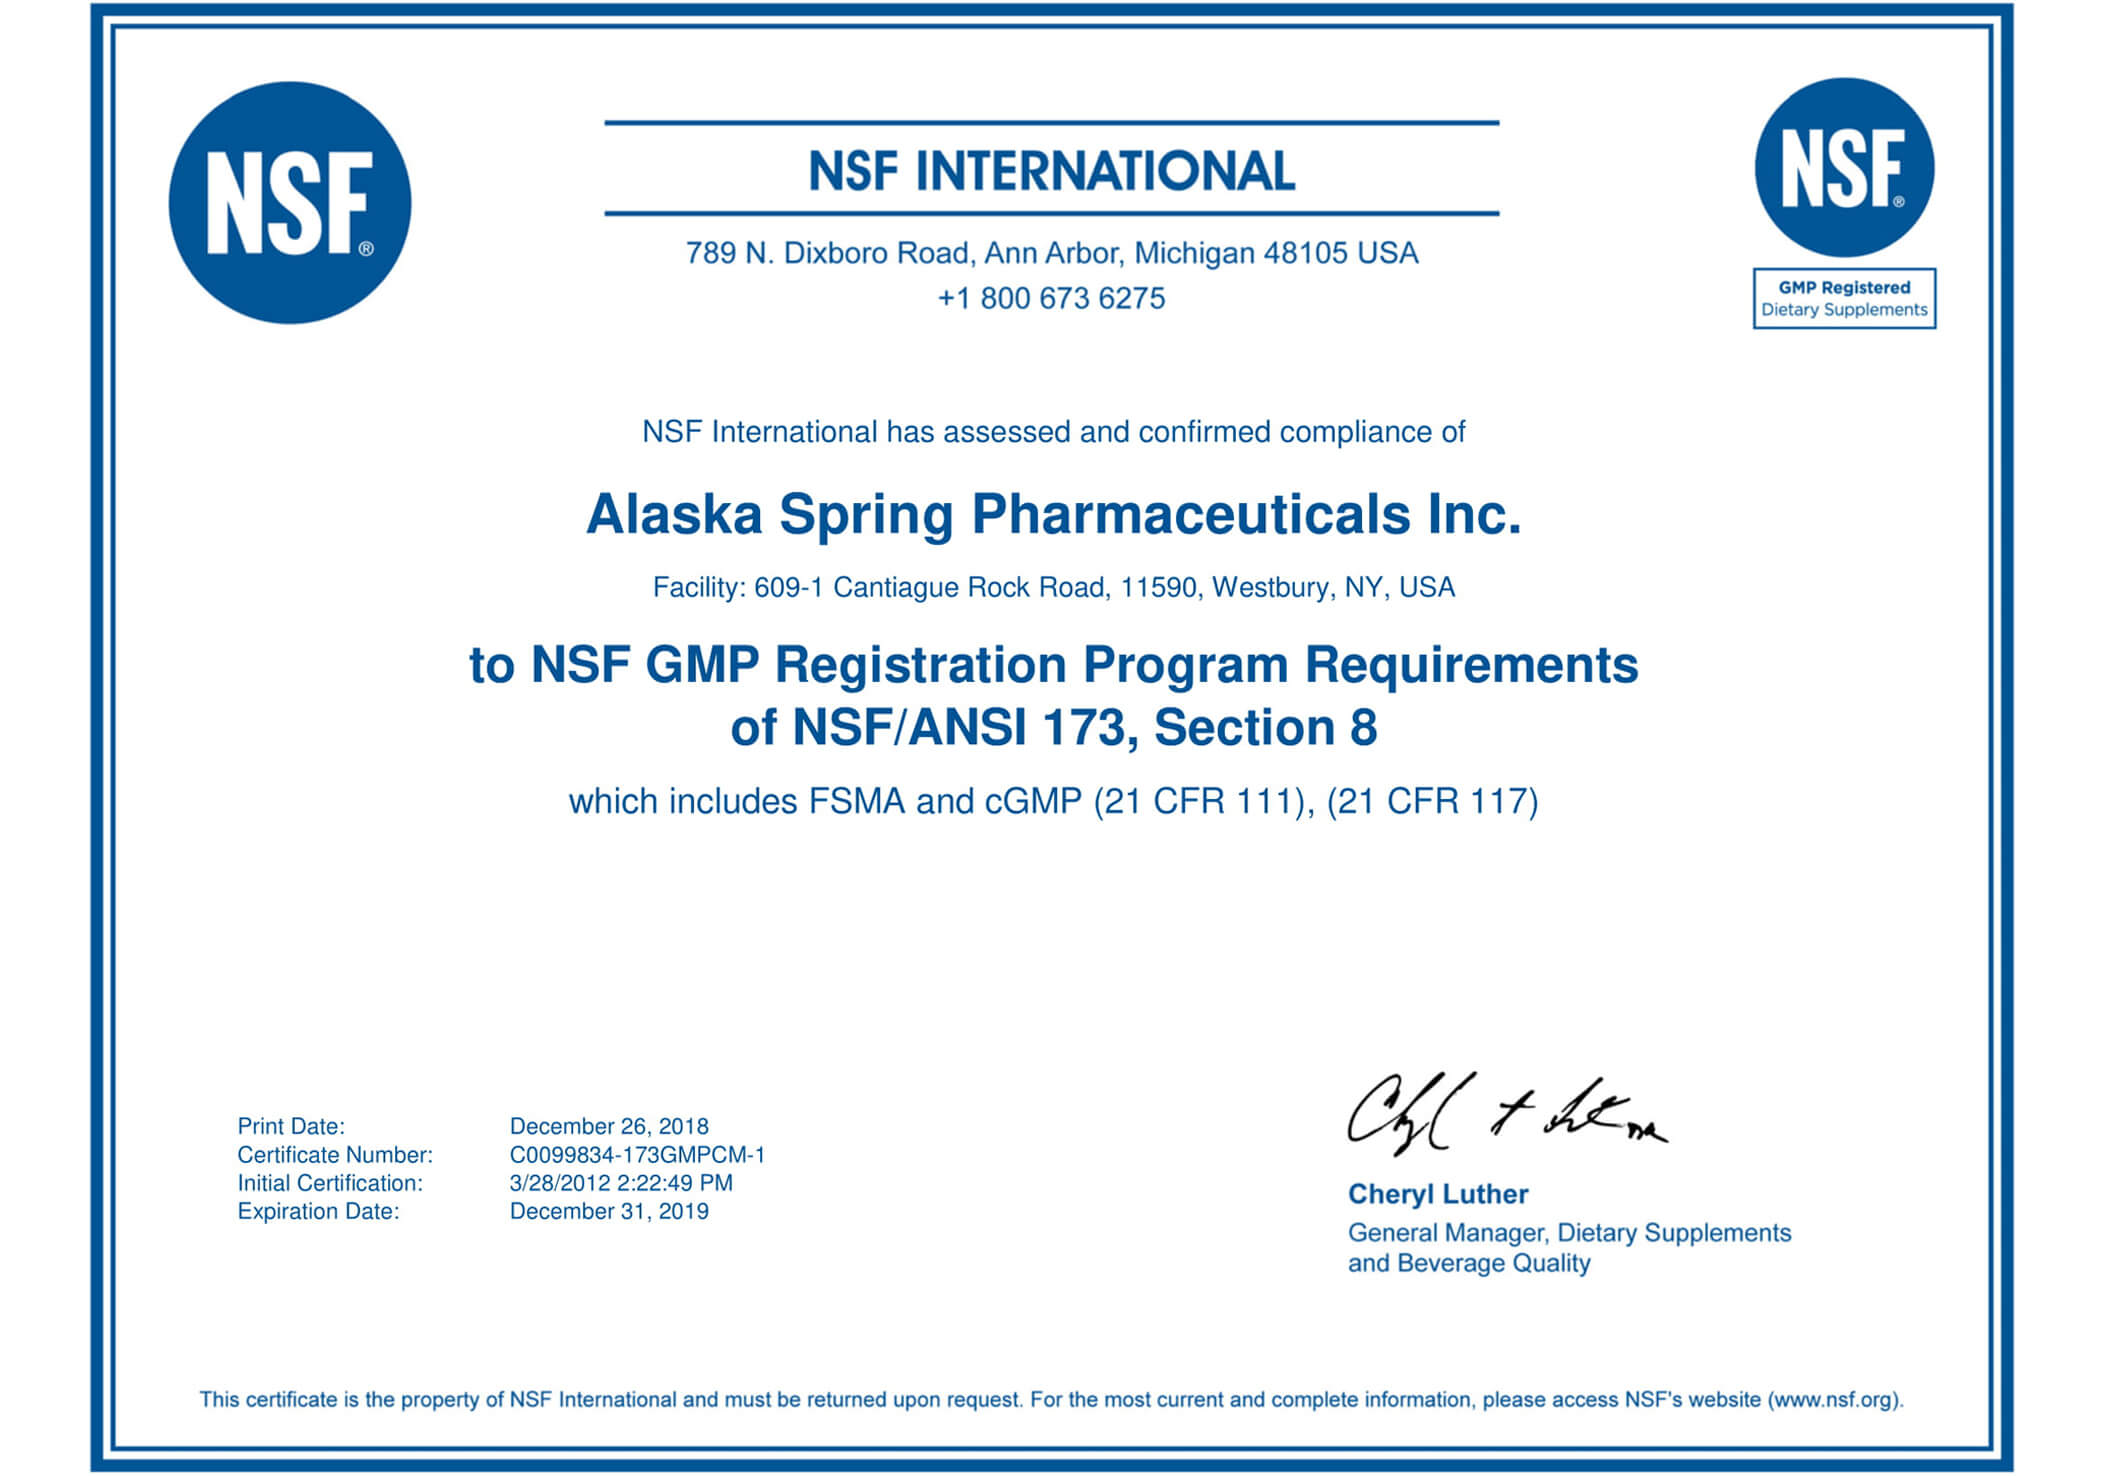 Certificate of NSF International